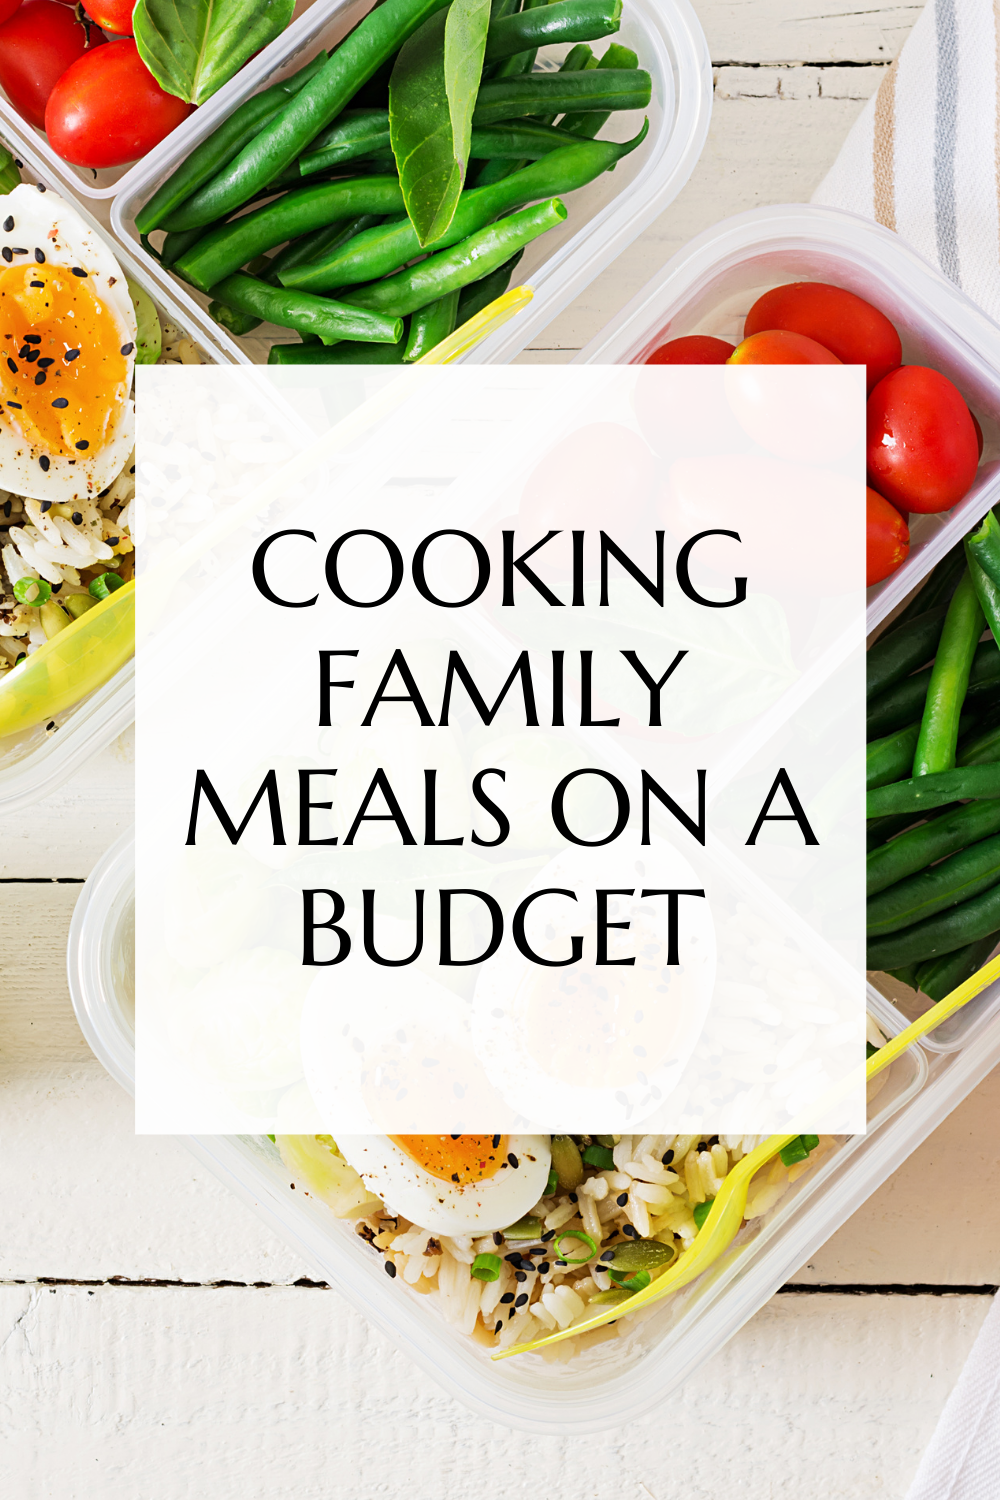 Cooking family meals on a budget will instil several good habits in your children that will stay with them throughout their life.